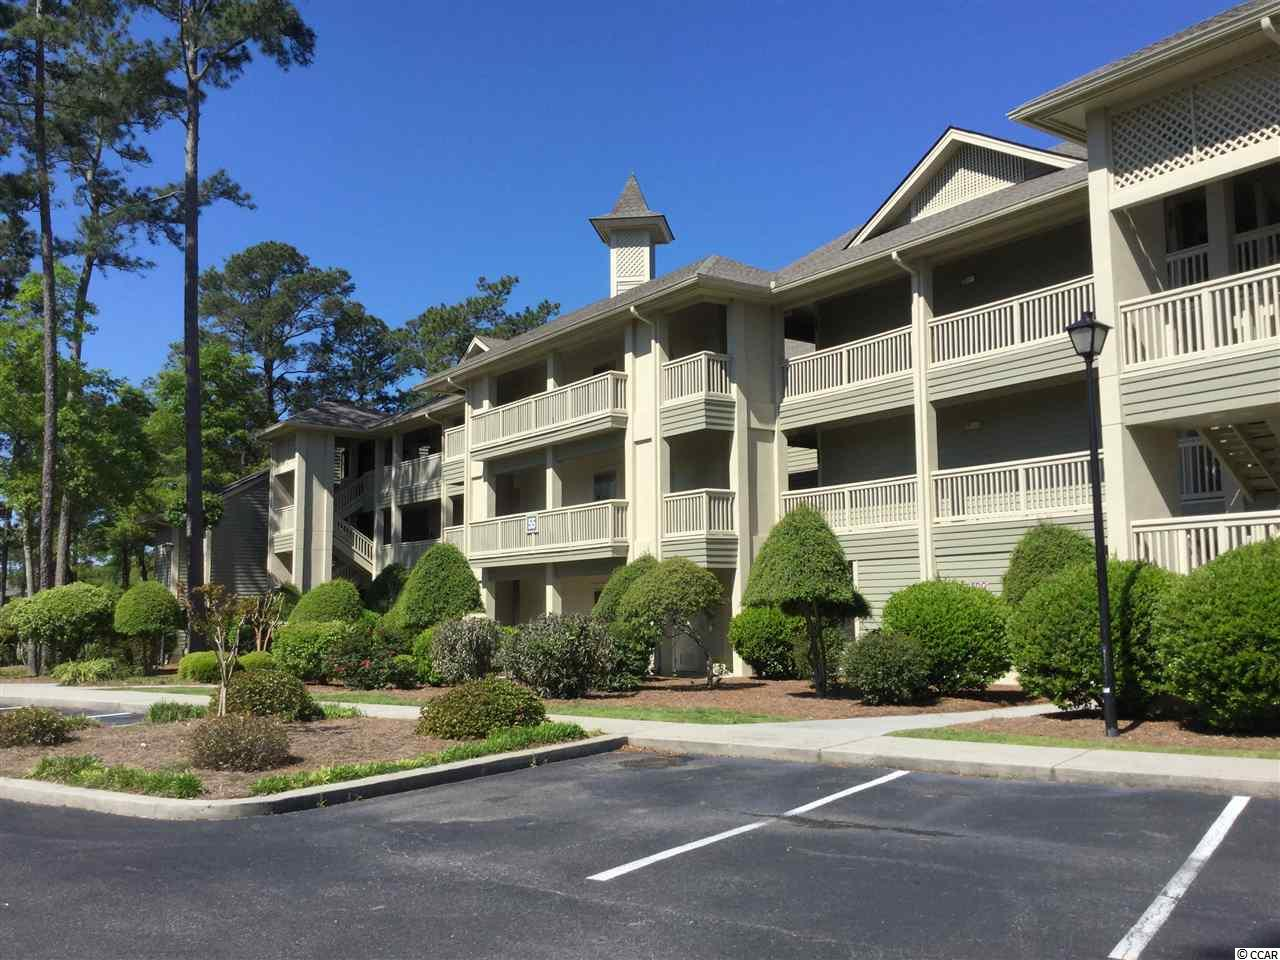 Enjoy the views of the Award Winning Tidewater Golf course and a Waterway view from several rooms in this 3 bedroom / 3 bath condo.  Large master bedroom with sliding doors to the screened in porch overlooking the 18th fairway. Master bath has separate shower and jetted tub with double vanity.  Upgrades includes:  carpet replaced 2017, new HVAC system 2018, new microwave 2018, new garbage disposal 2019,  water heater replaced within the last 5 years.  Master bedroom and Second bedroom has walk in closets, third bedroom has a double closet.  The kitchen has good cabinet space, pantry and breakfast bar.  Tidewater is a gated community with 24/7 security.  Enjoy the beach cabana, pools, tennis courts and fitness center.  Storage area available for owners as well.  And don't forget the golf!  Plus much more in this beautiful community.